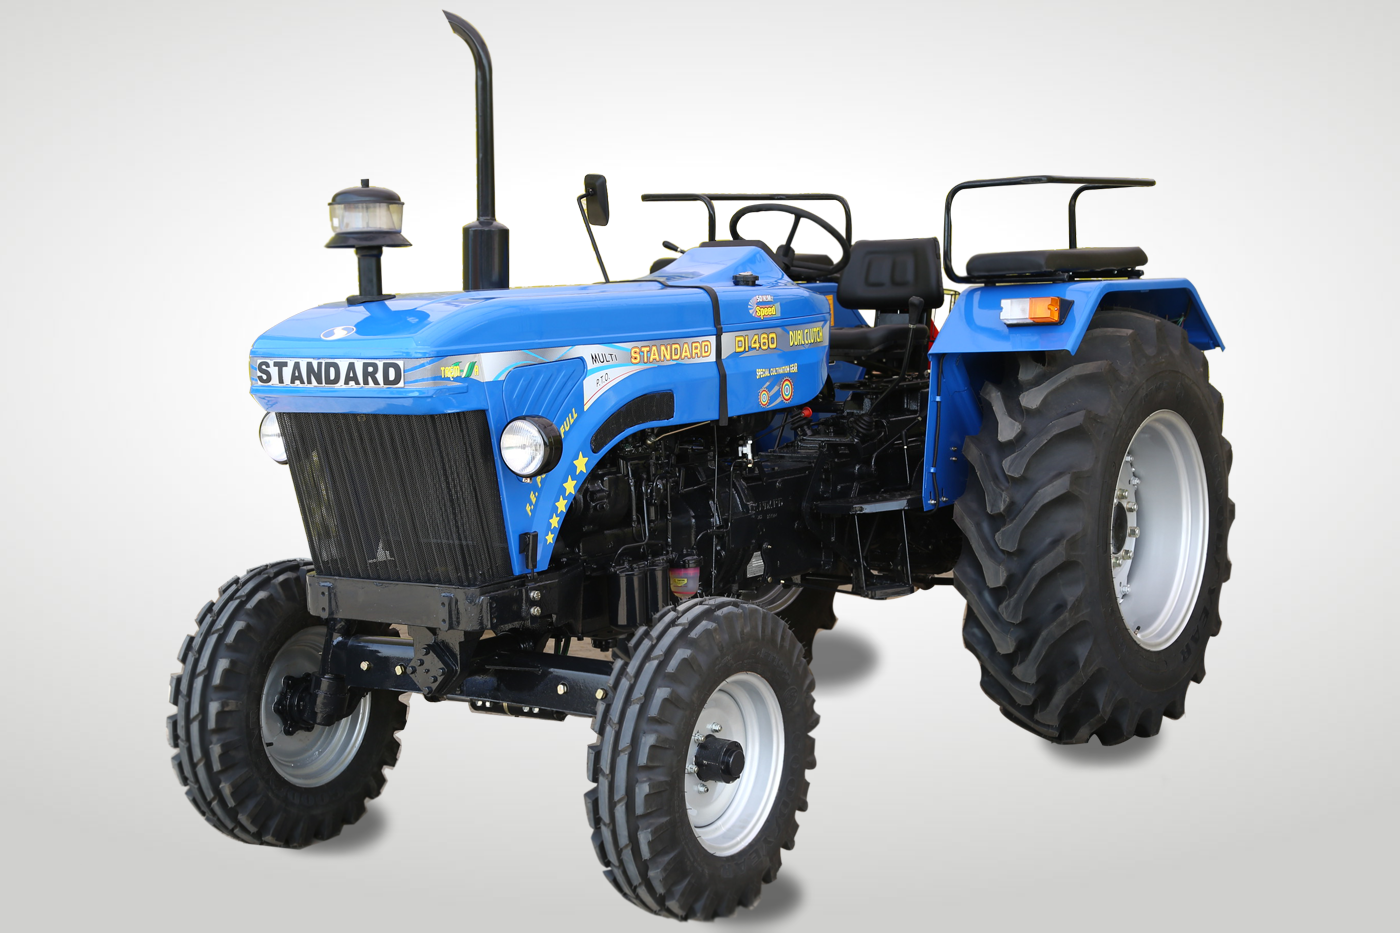 Standard DI 475 Tractor Price Specificatons